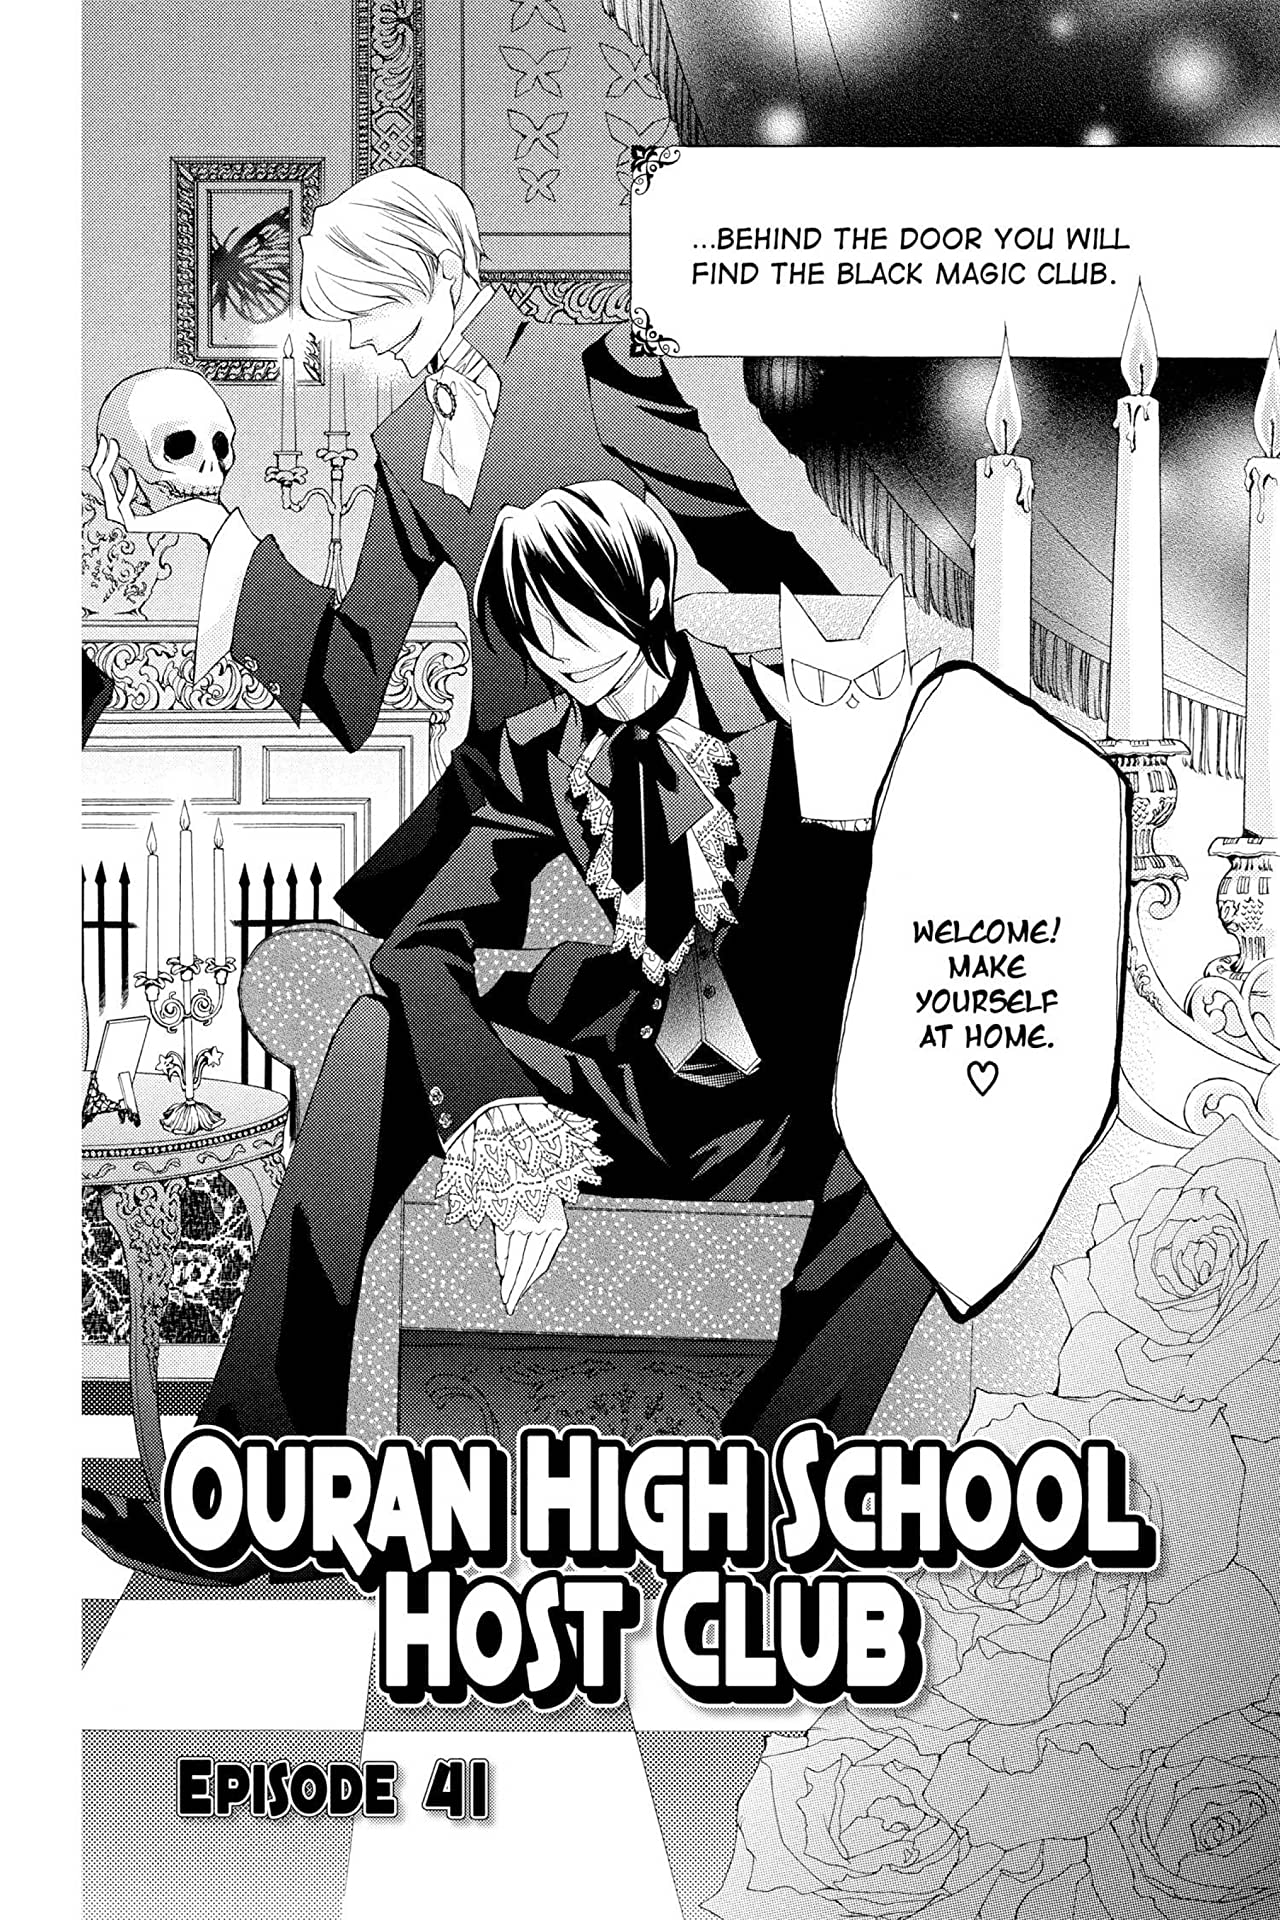 Ouran High School Host Club Vol. 10